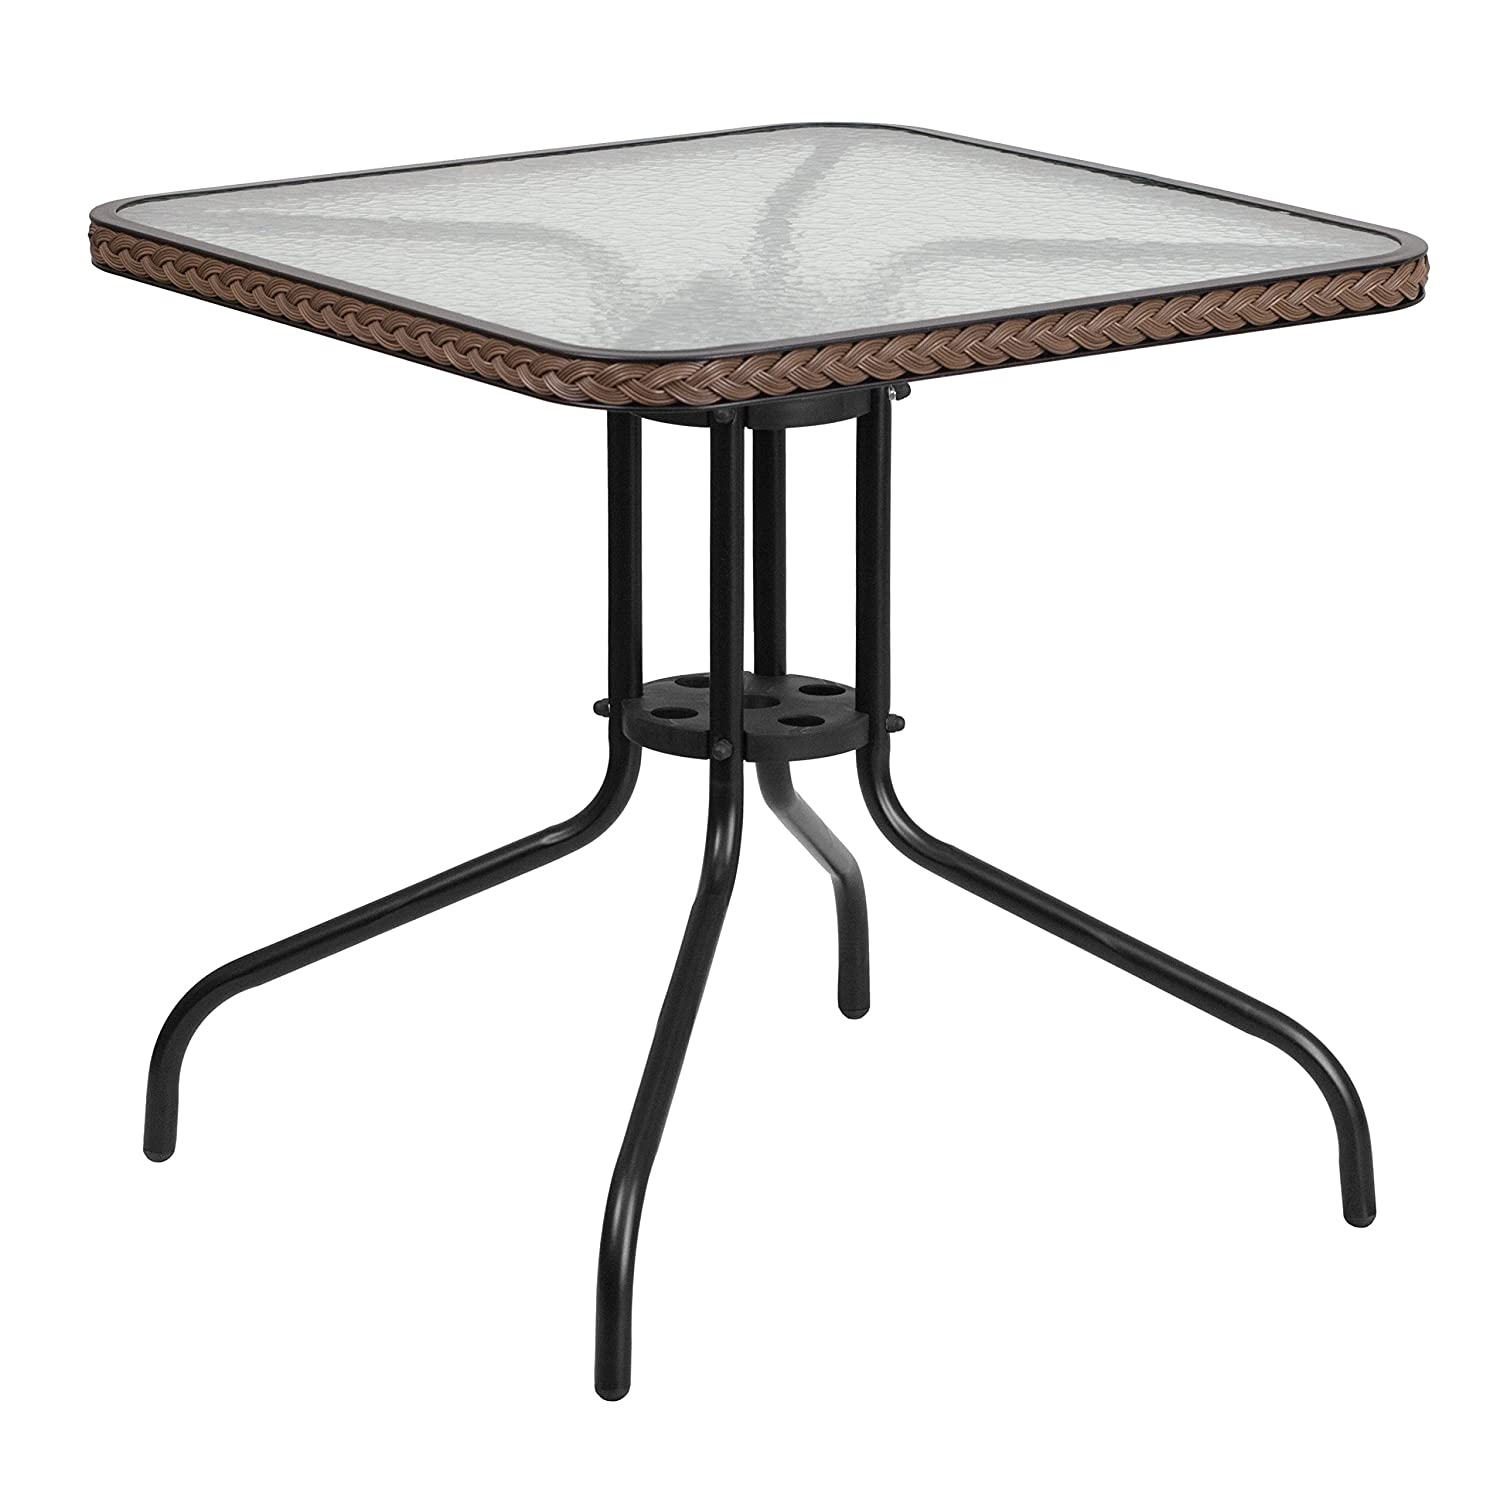 Amazon flash furniture 28 square tempered glass metal table amazon flash furniture 28 square tempered glass metal table with dark brown rattan edging kitchen dining watchthetrailerfo